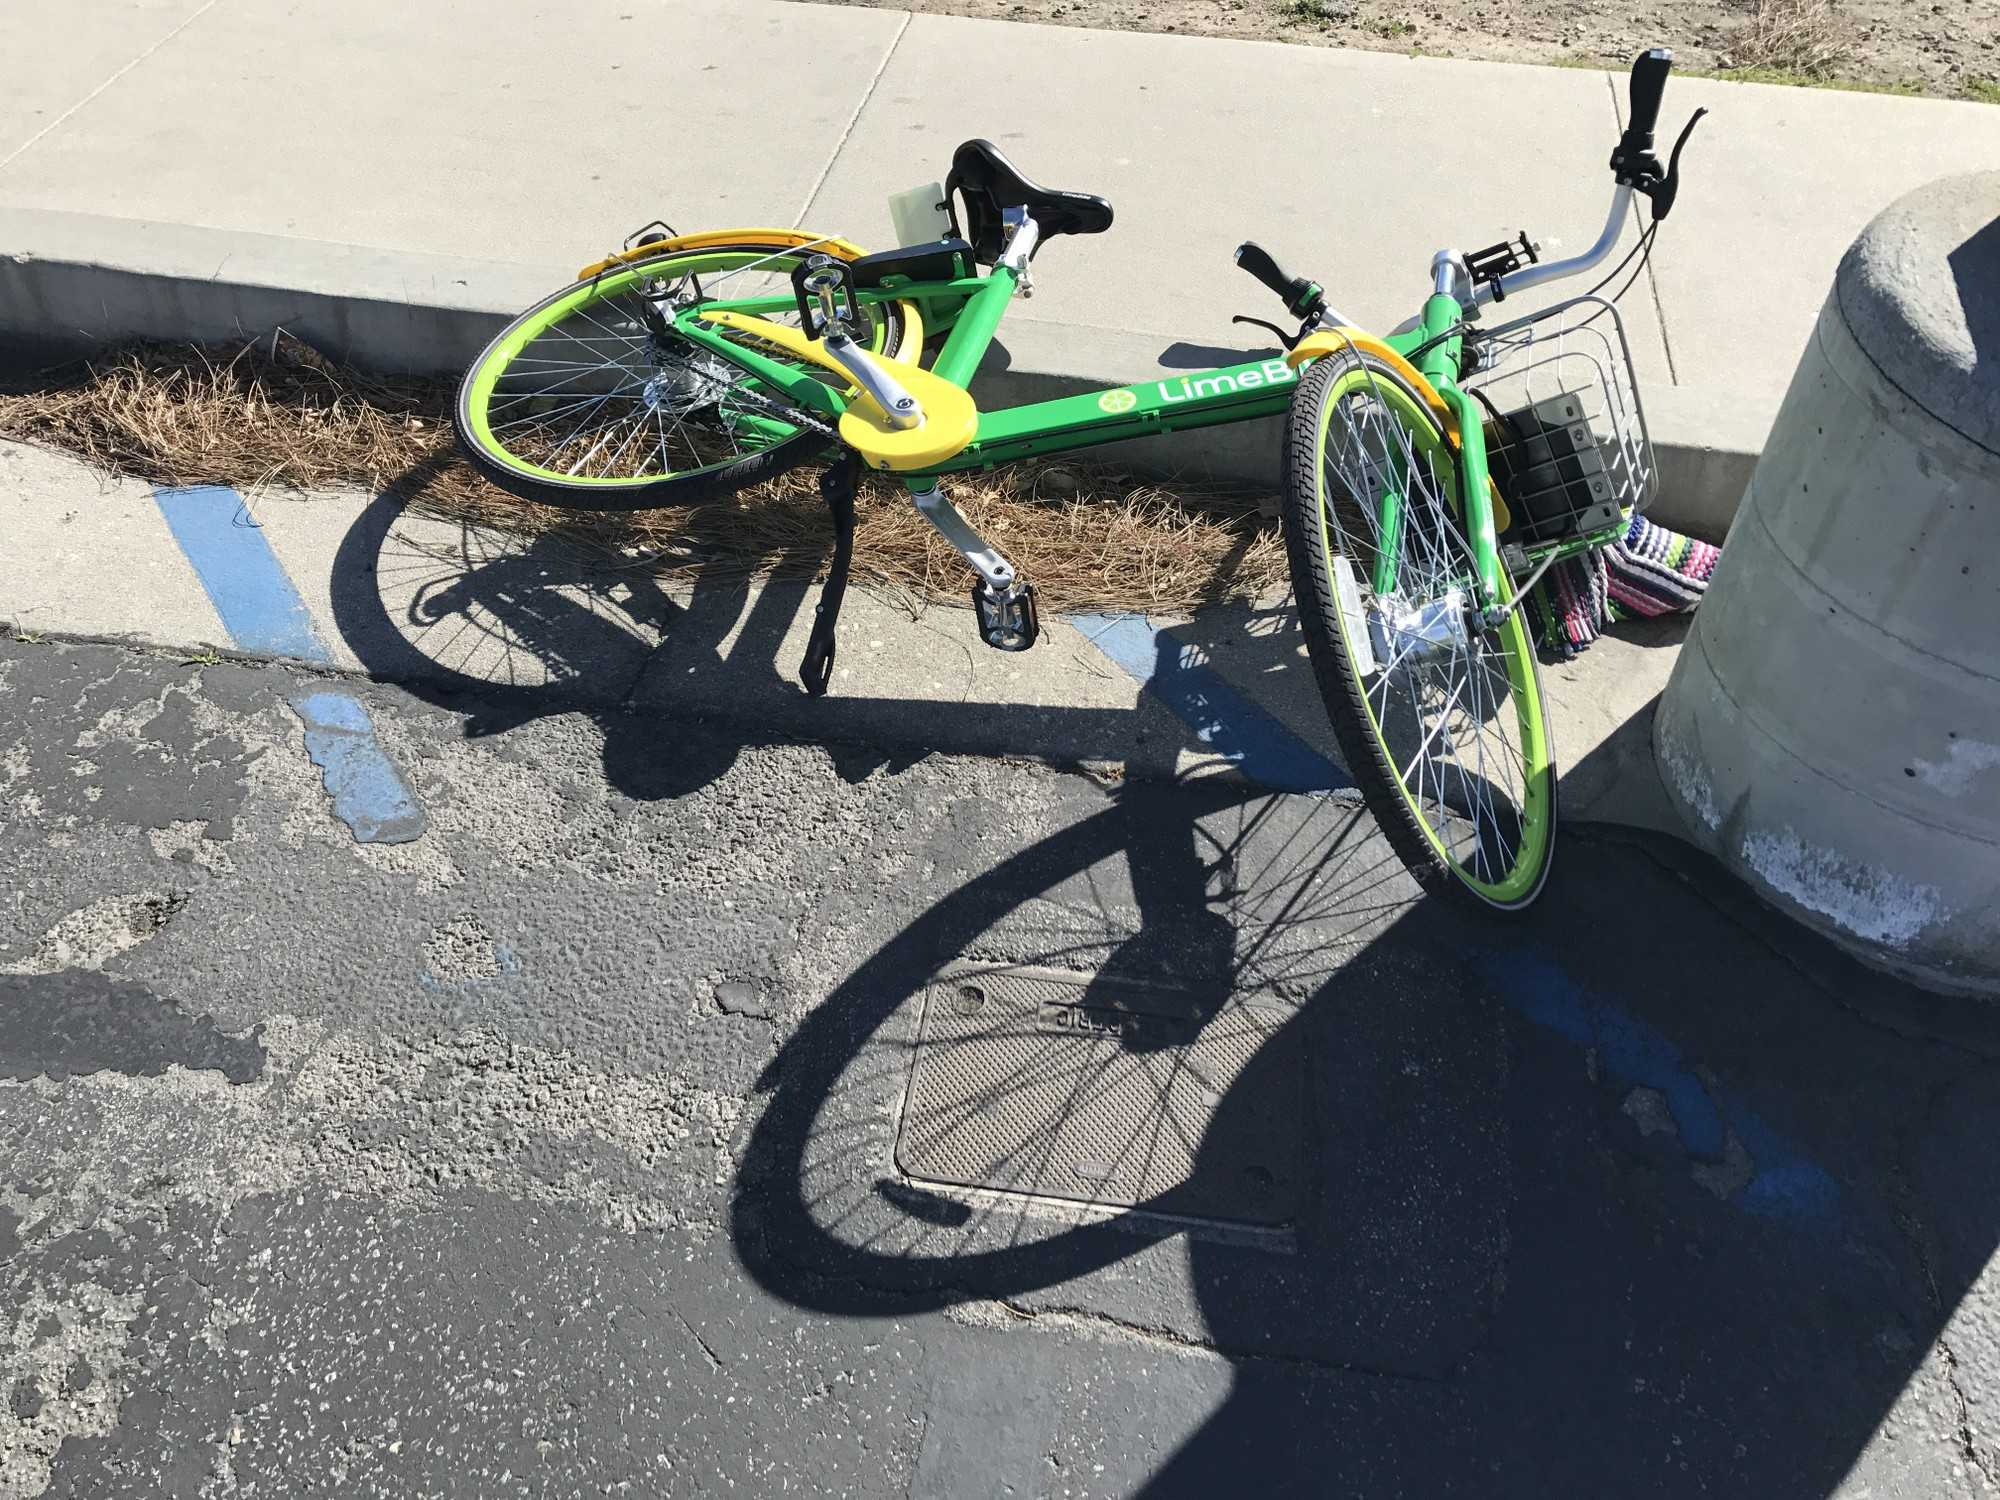 Abandoned LimeBikes can pose problems, as they cannot be moved unless they are paid for and activated Photo credit: Tandy Lau